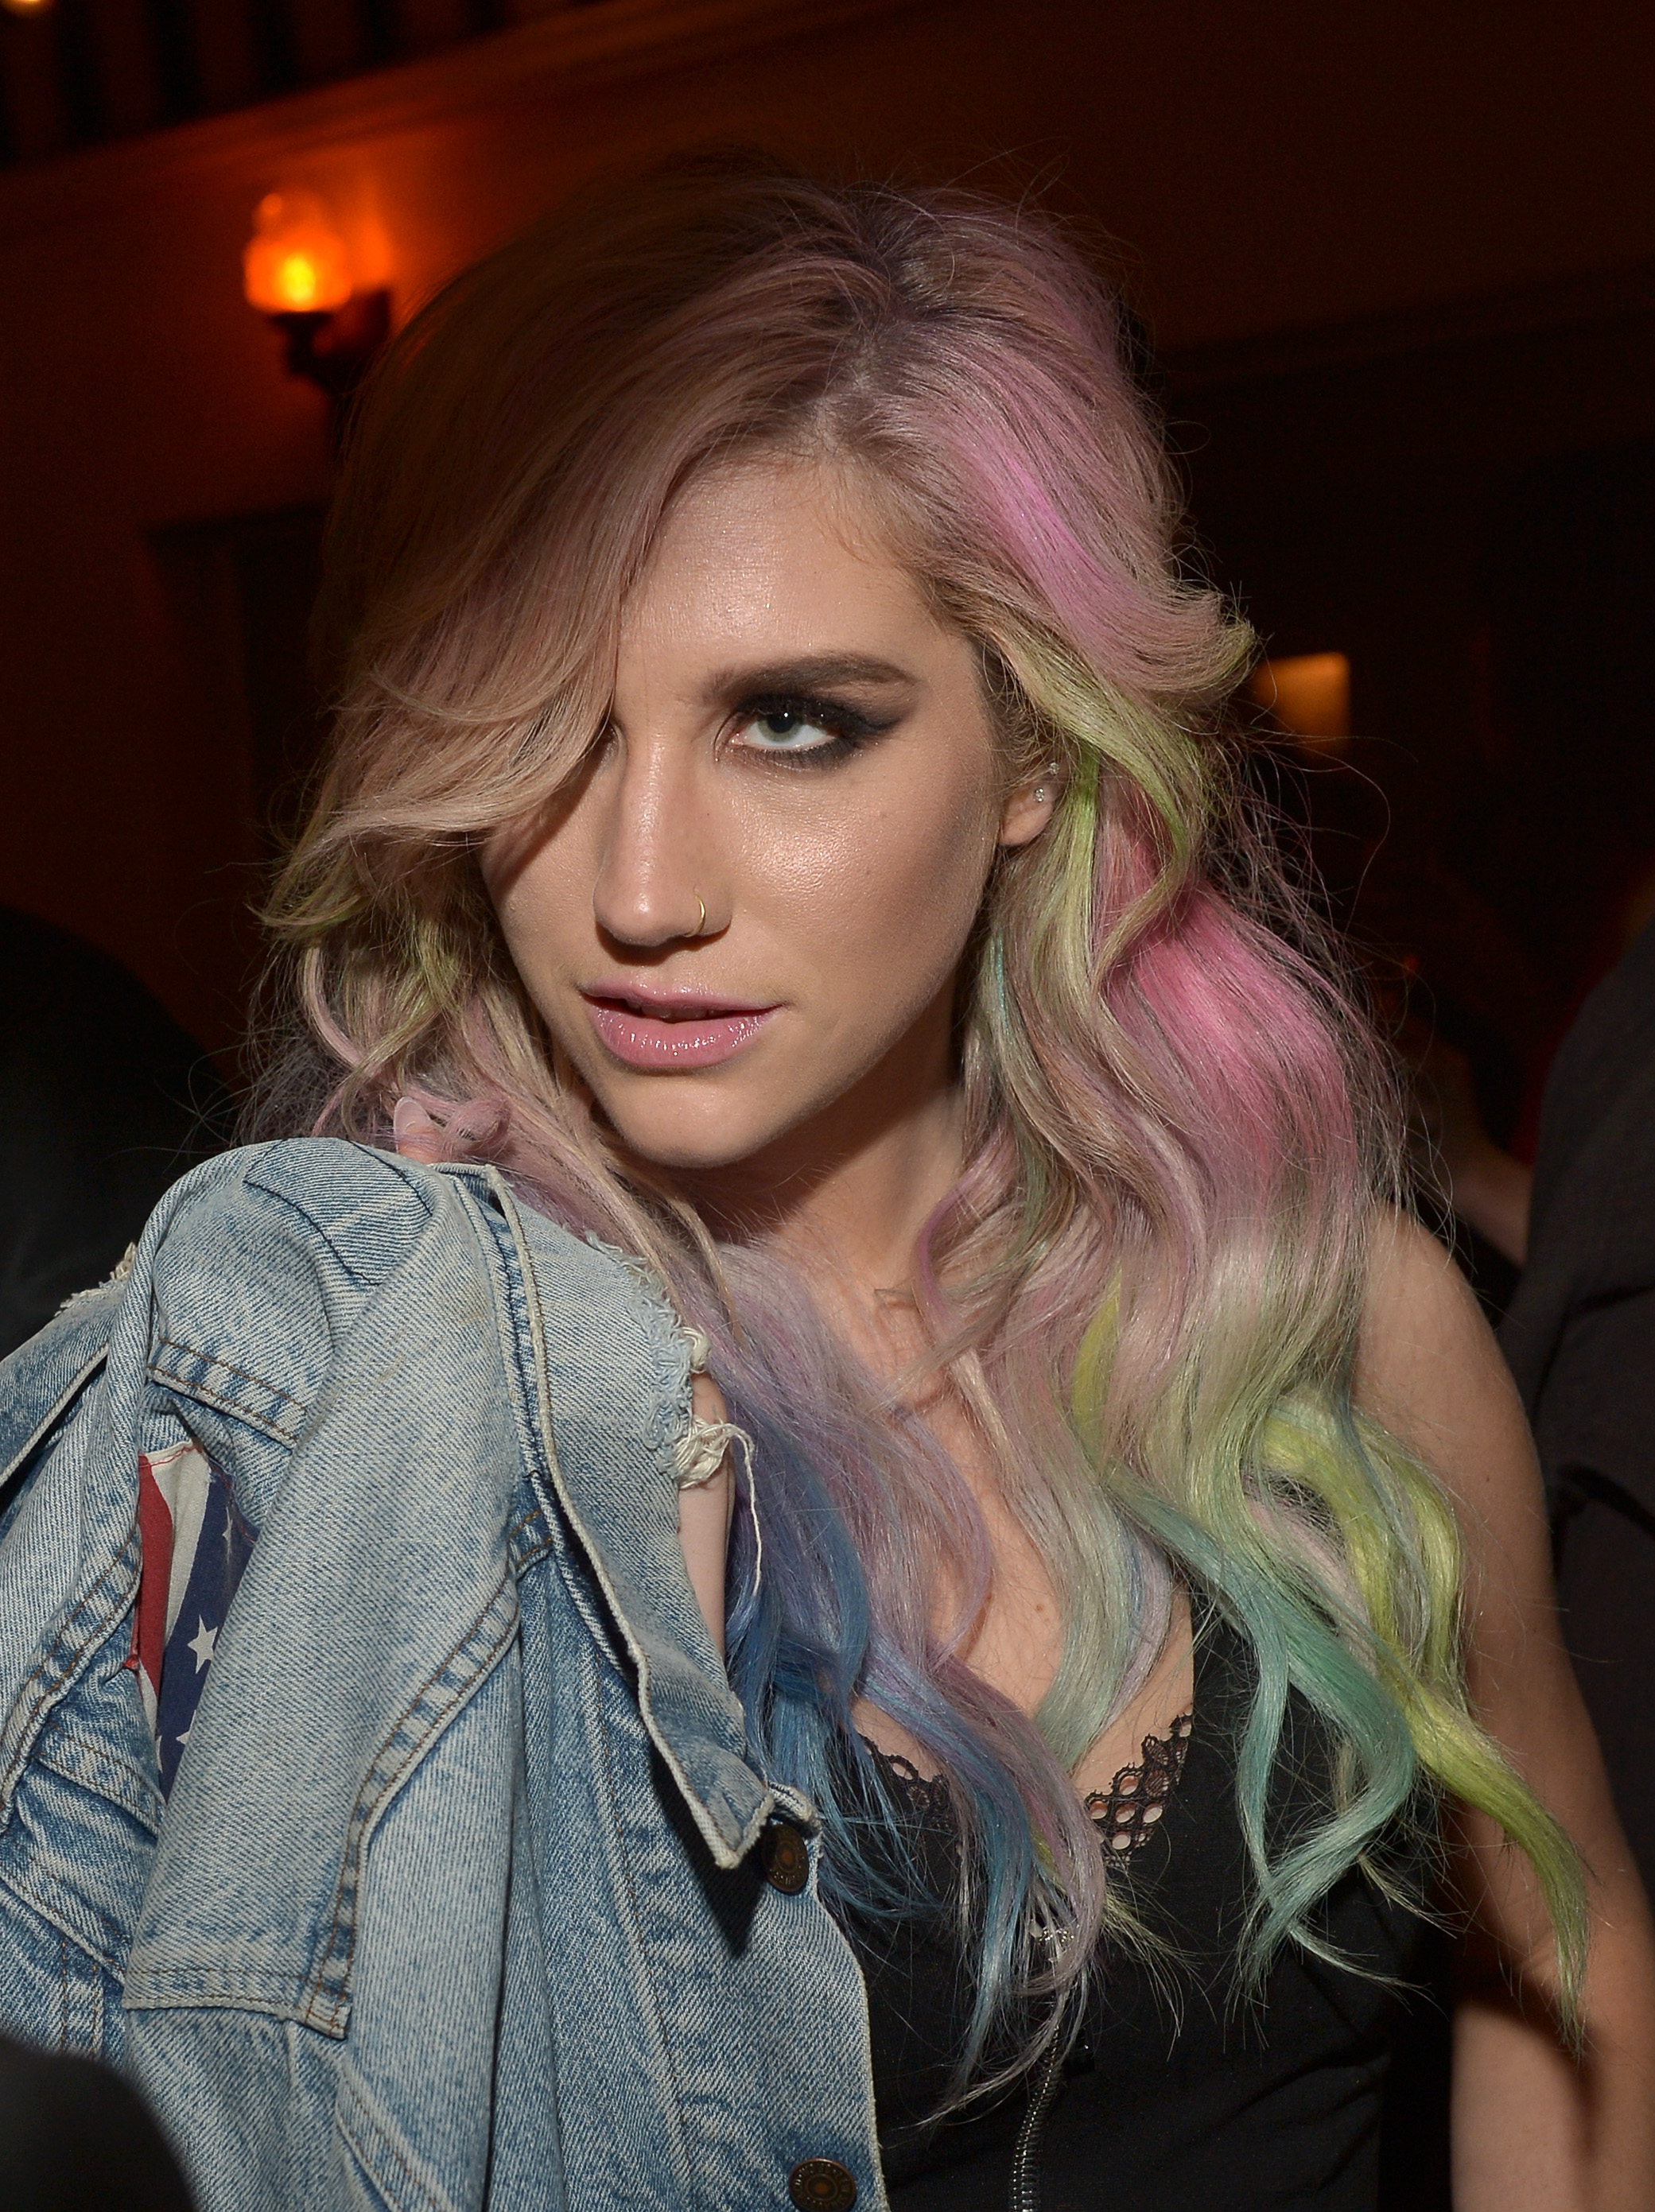 Hair Chalk Vs Temporary Hair Dye And All The Other Ways To Get